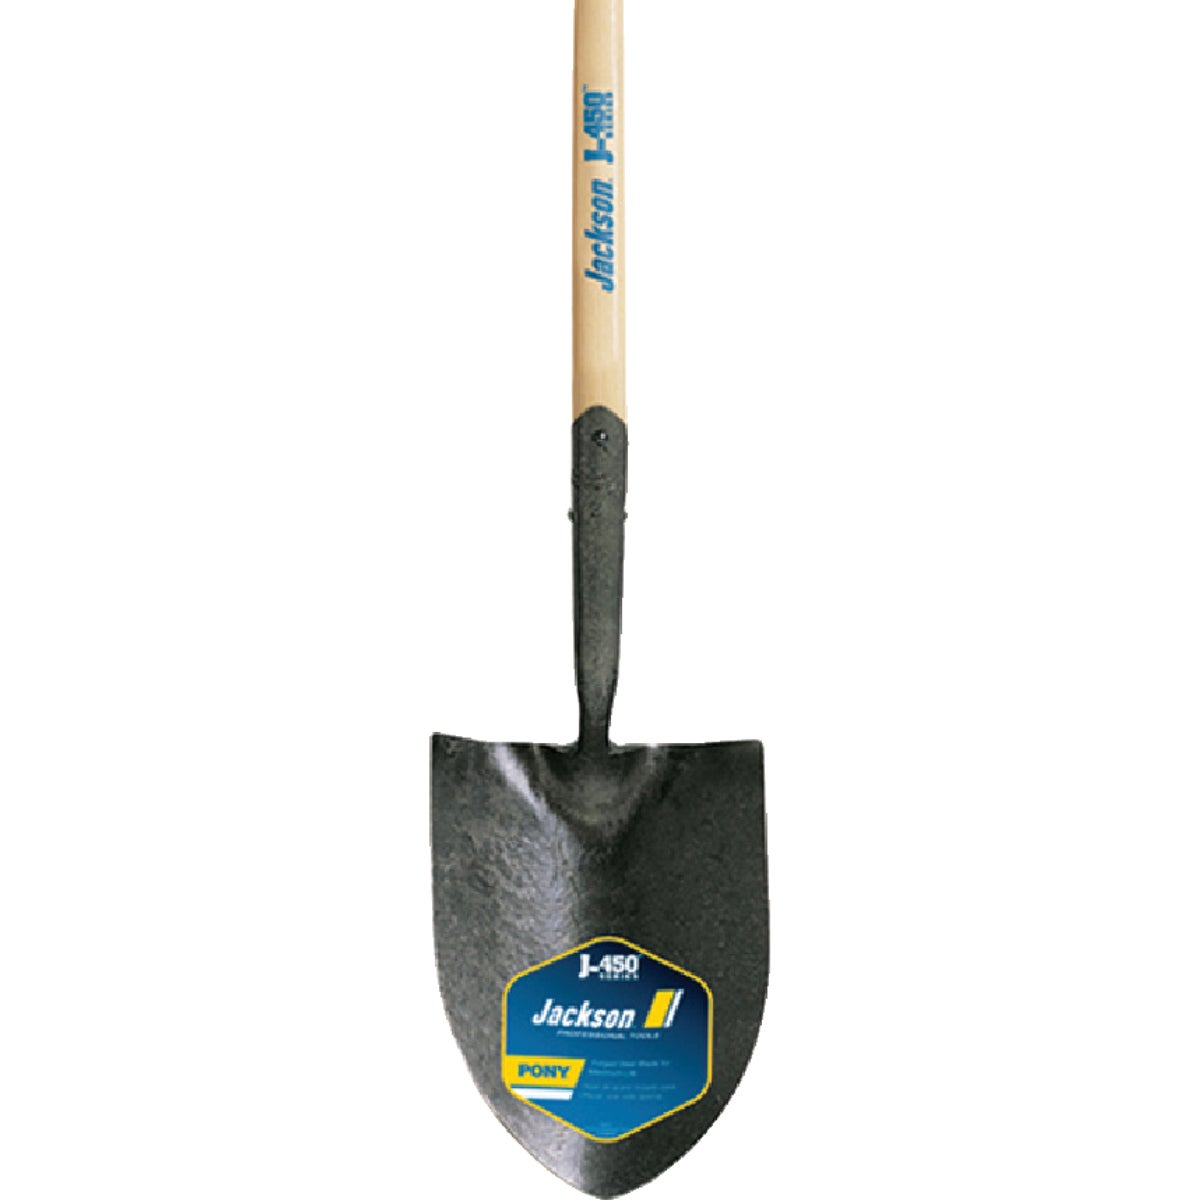 LONG HDL RD PT SHOVEL - 1201900 by Ames True Temper